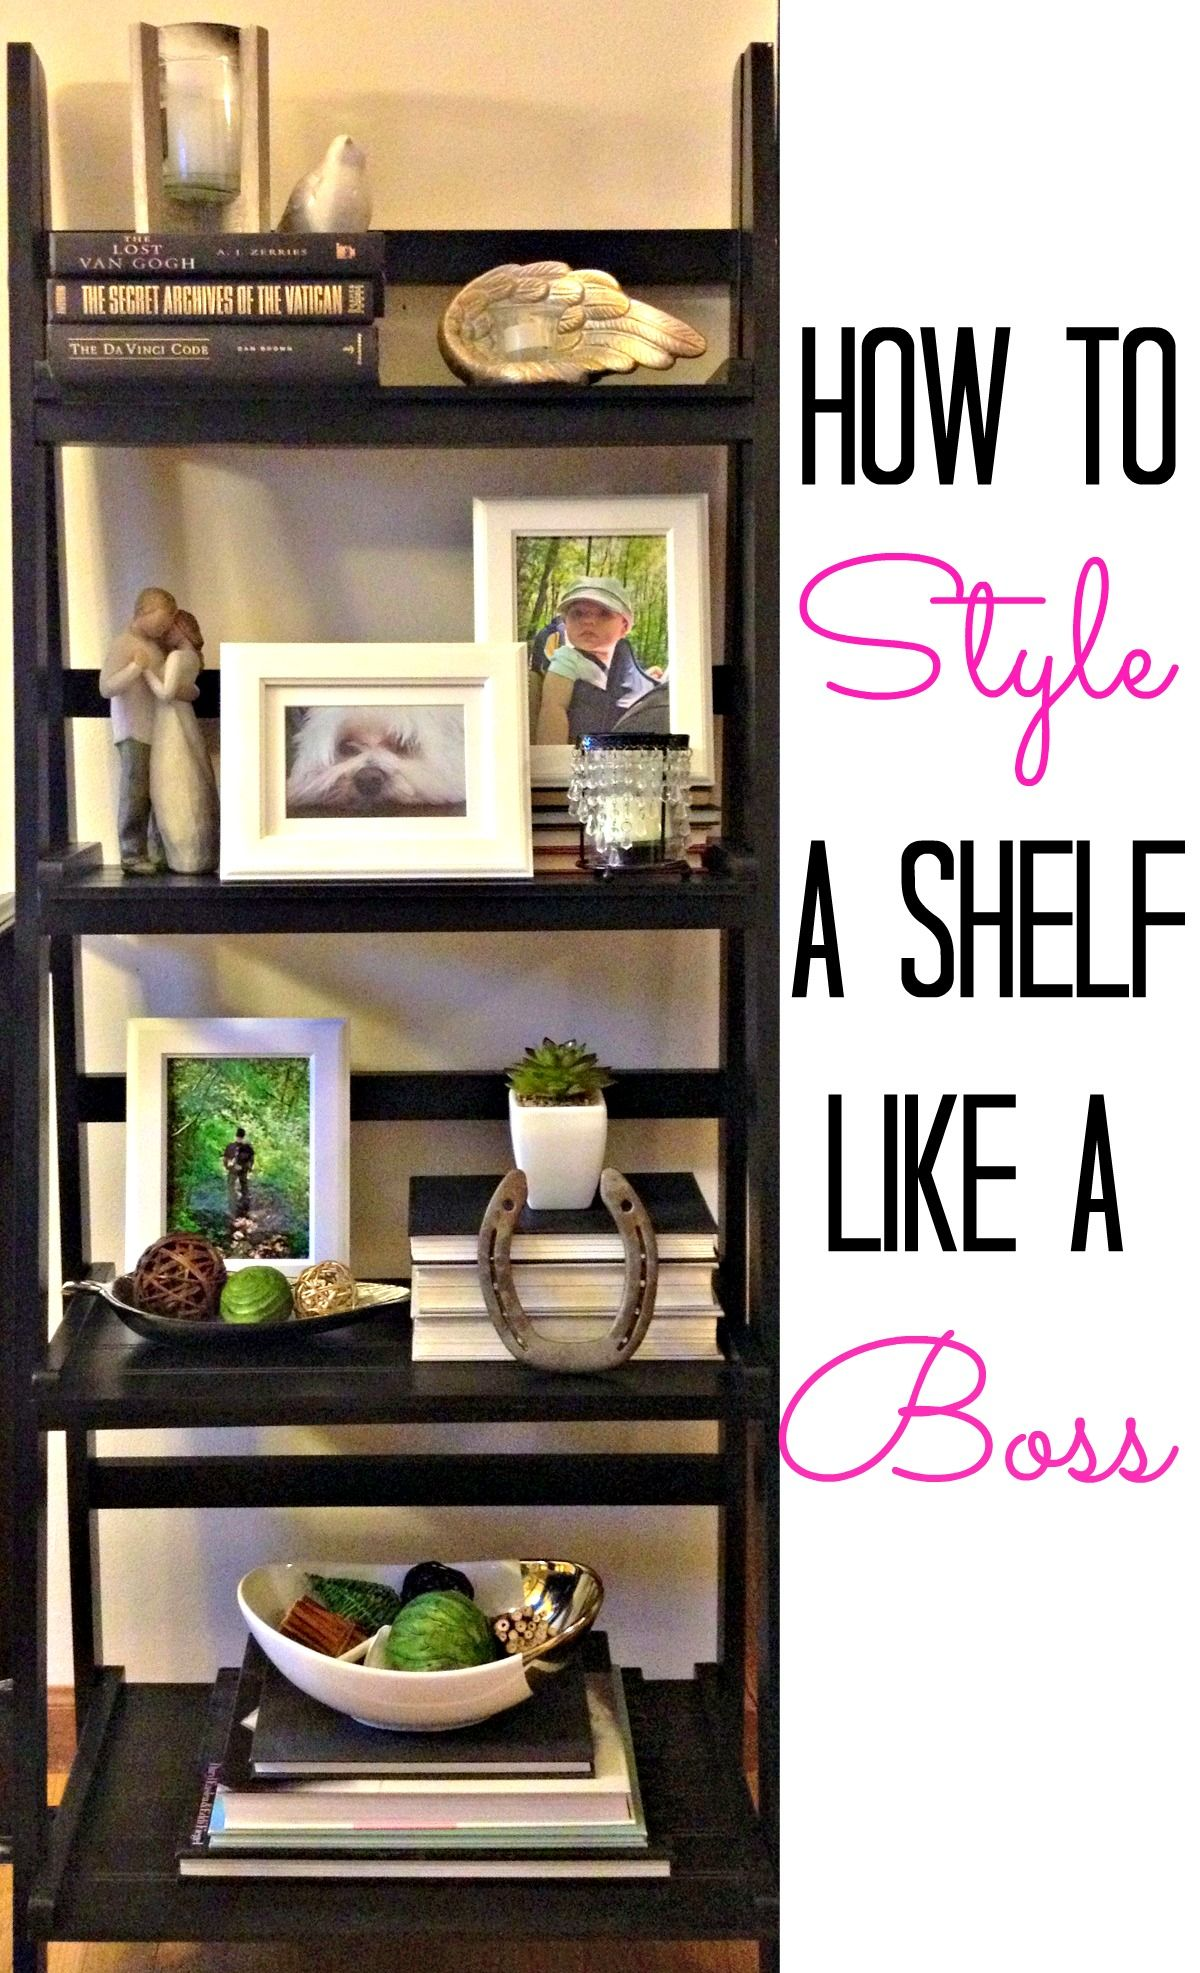 How To Decorate Bookshelves How To Style A Shelf Like A Boss  Pedestal Boss And Shelves